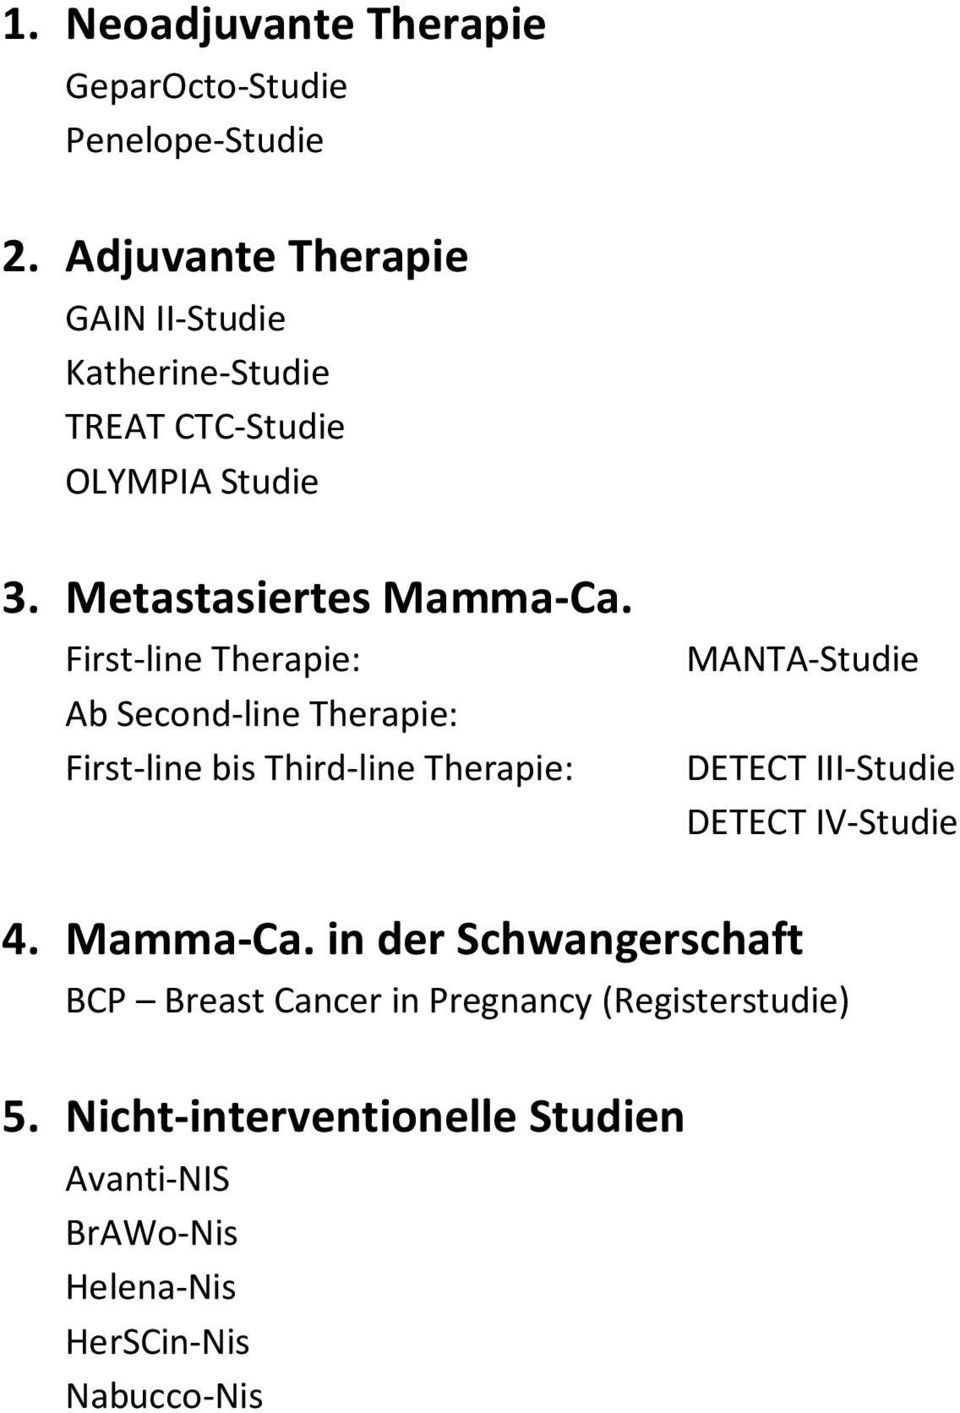 First-line Therapie: Ab Second-line Therapie: First-line bis Third-line Therapie: MANTA-Studie DETECT III-Studie